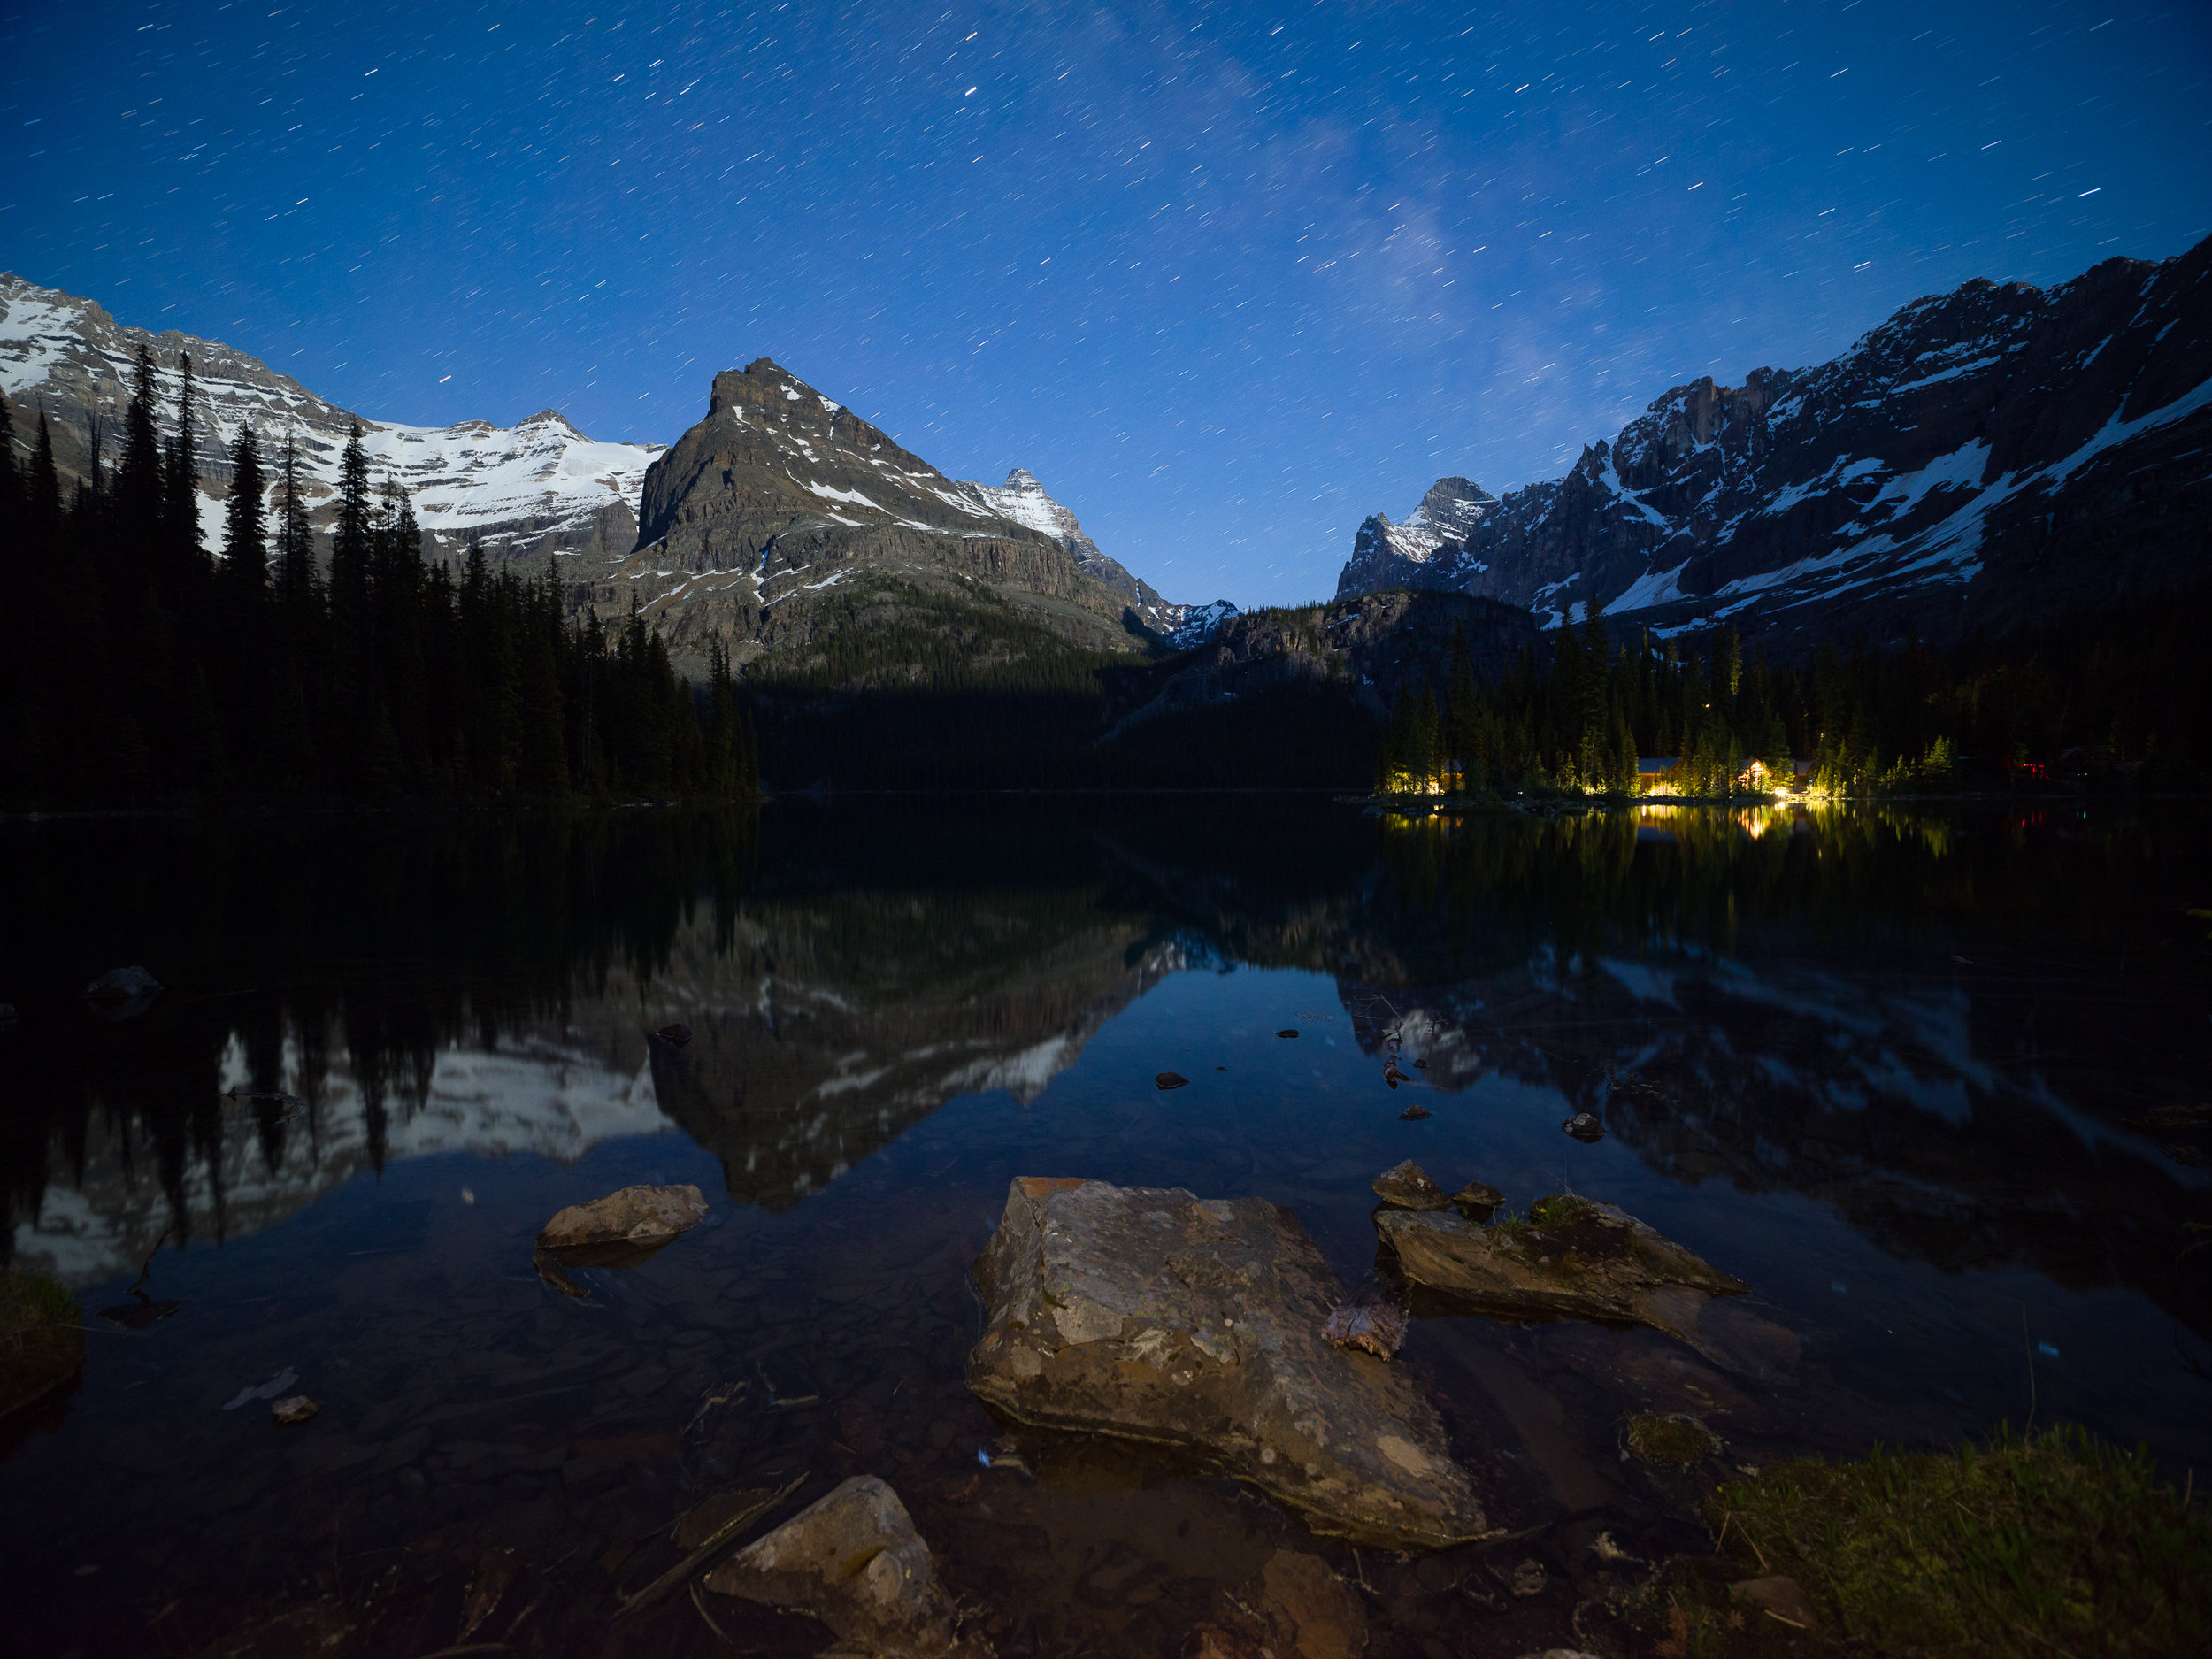 photo_workshop_lake_ohara-1.jpg